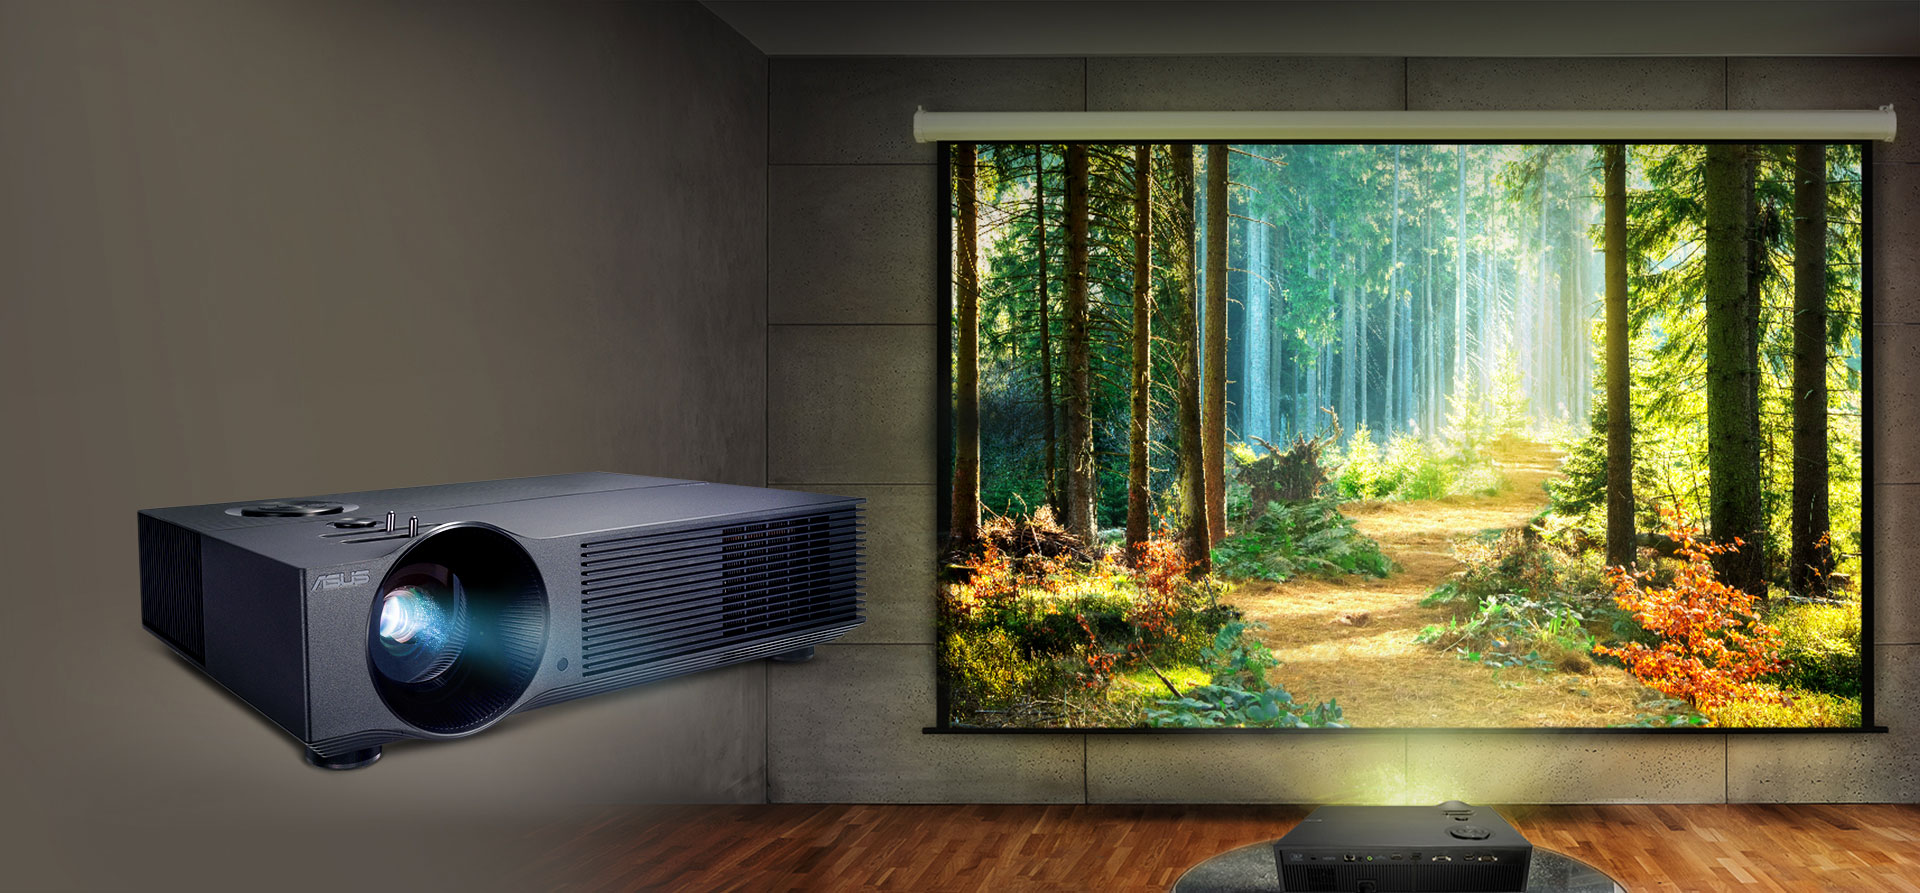 ASUS H1 LED: a great solution for movies and videos